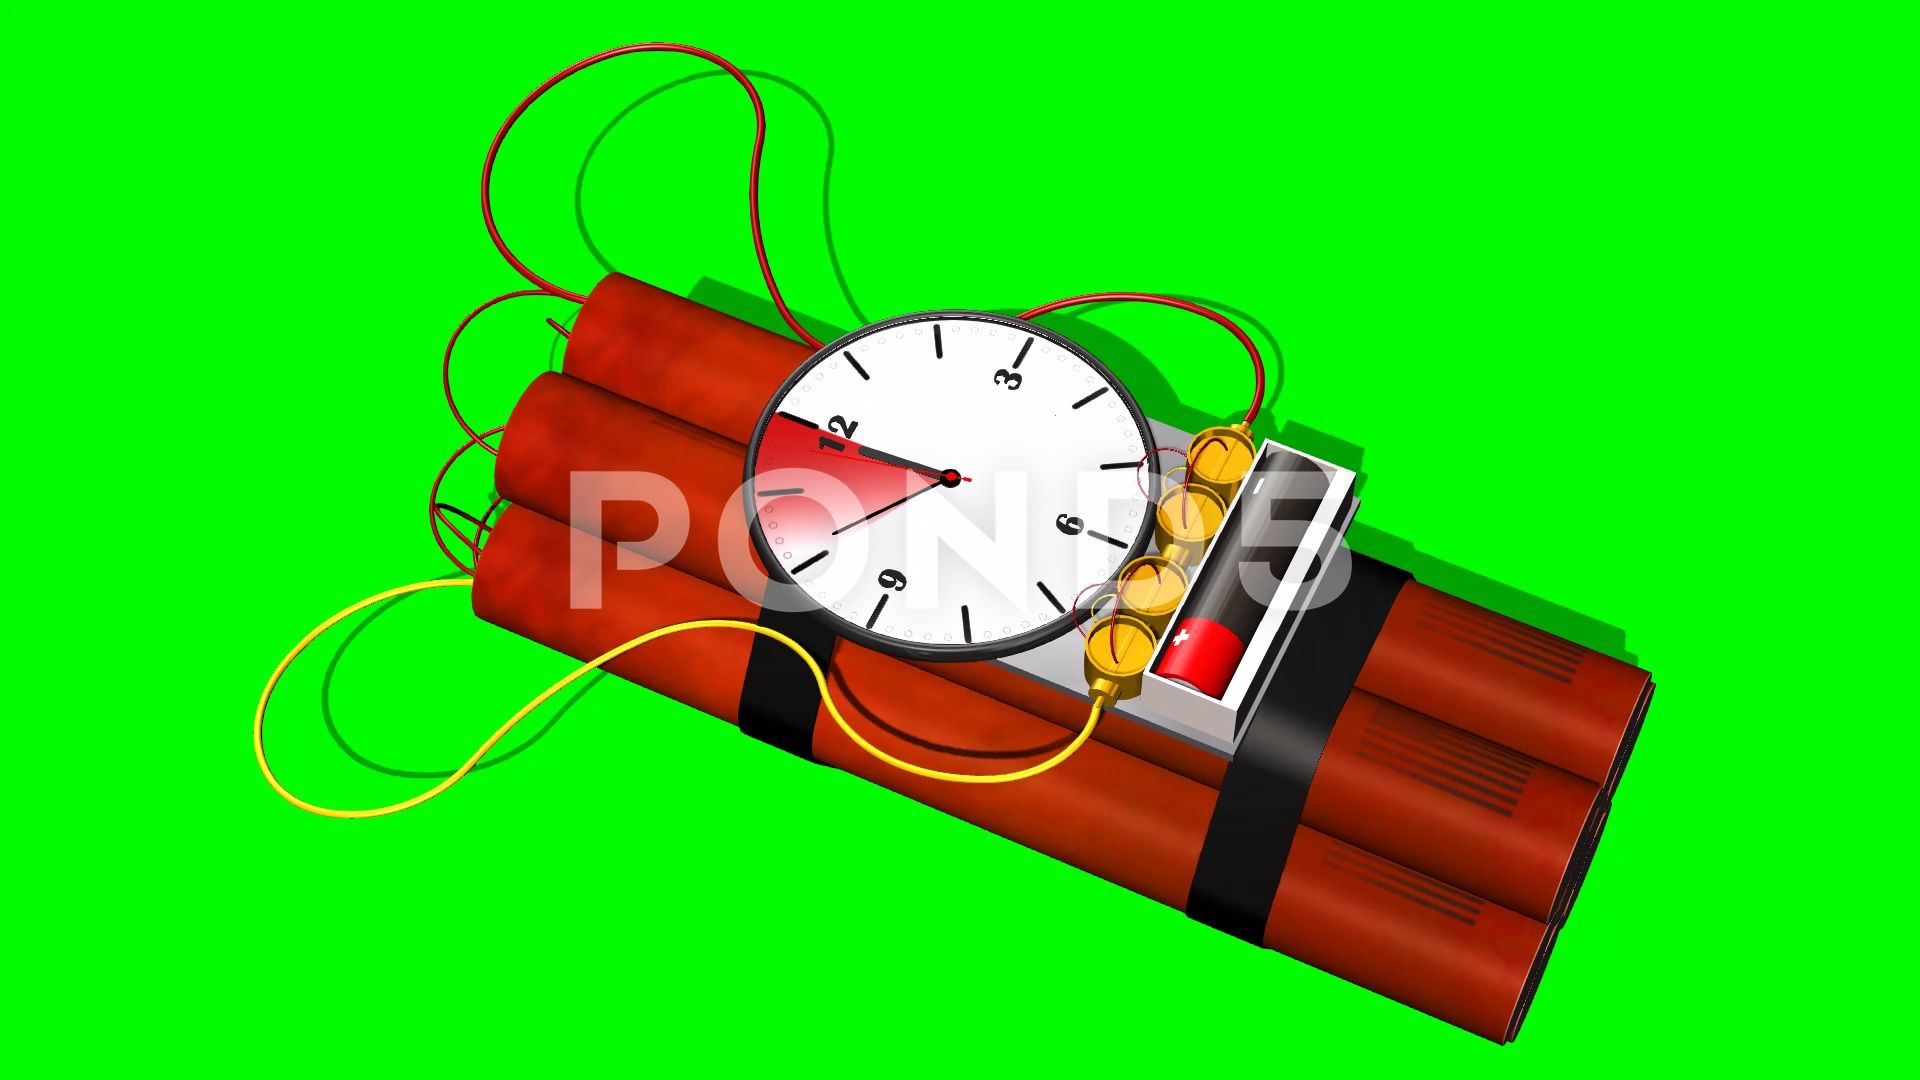 Dynamite bomb with clock timer 10 sec time laps explosion